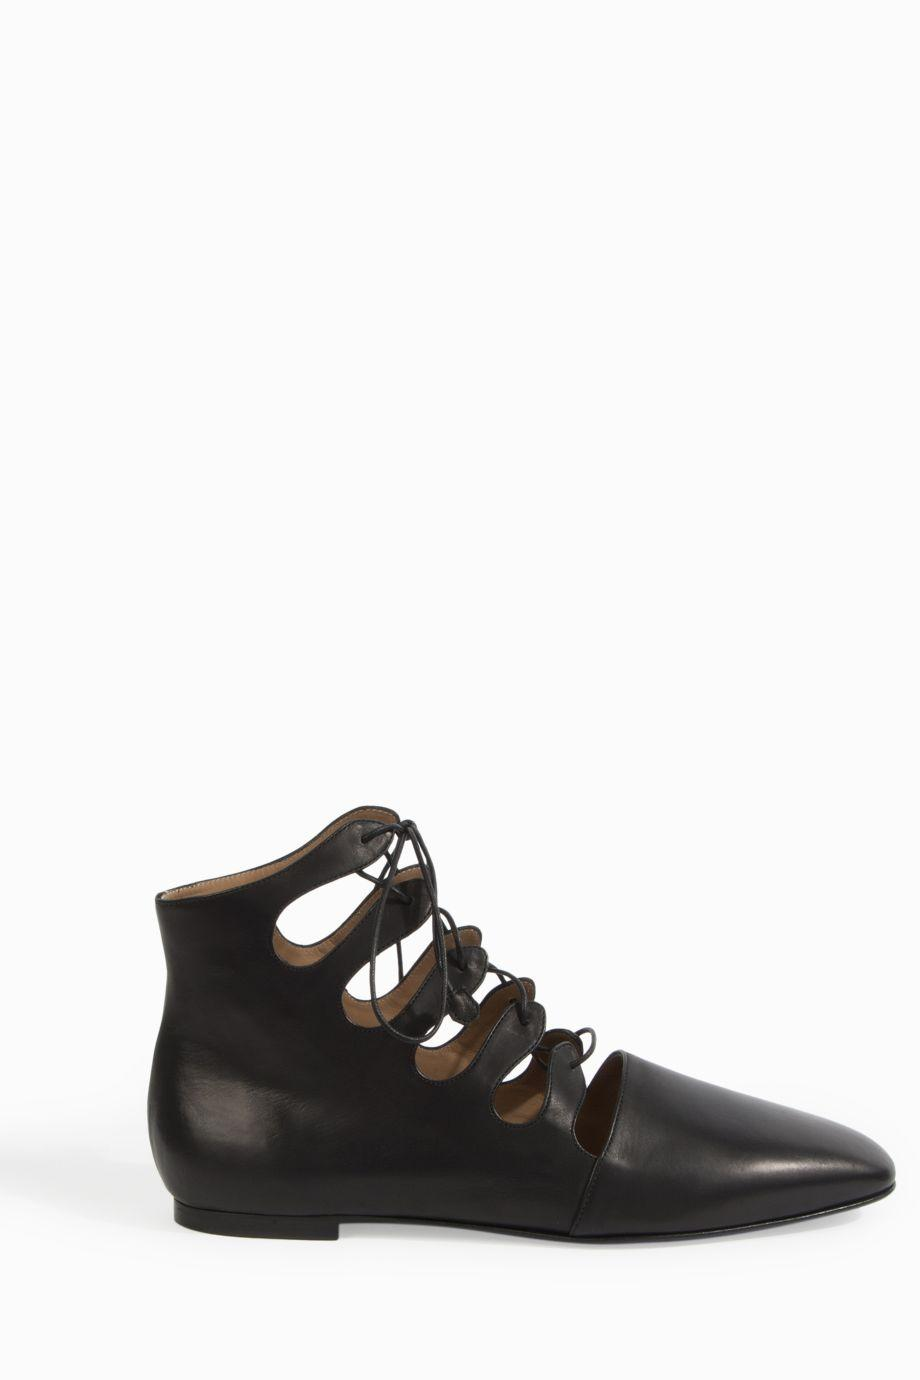 The Row Dimitri Lace-Up Leather Ankle Boots, Black